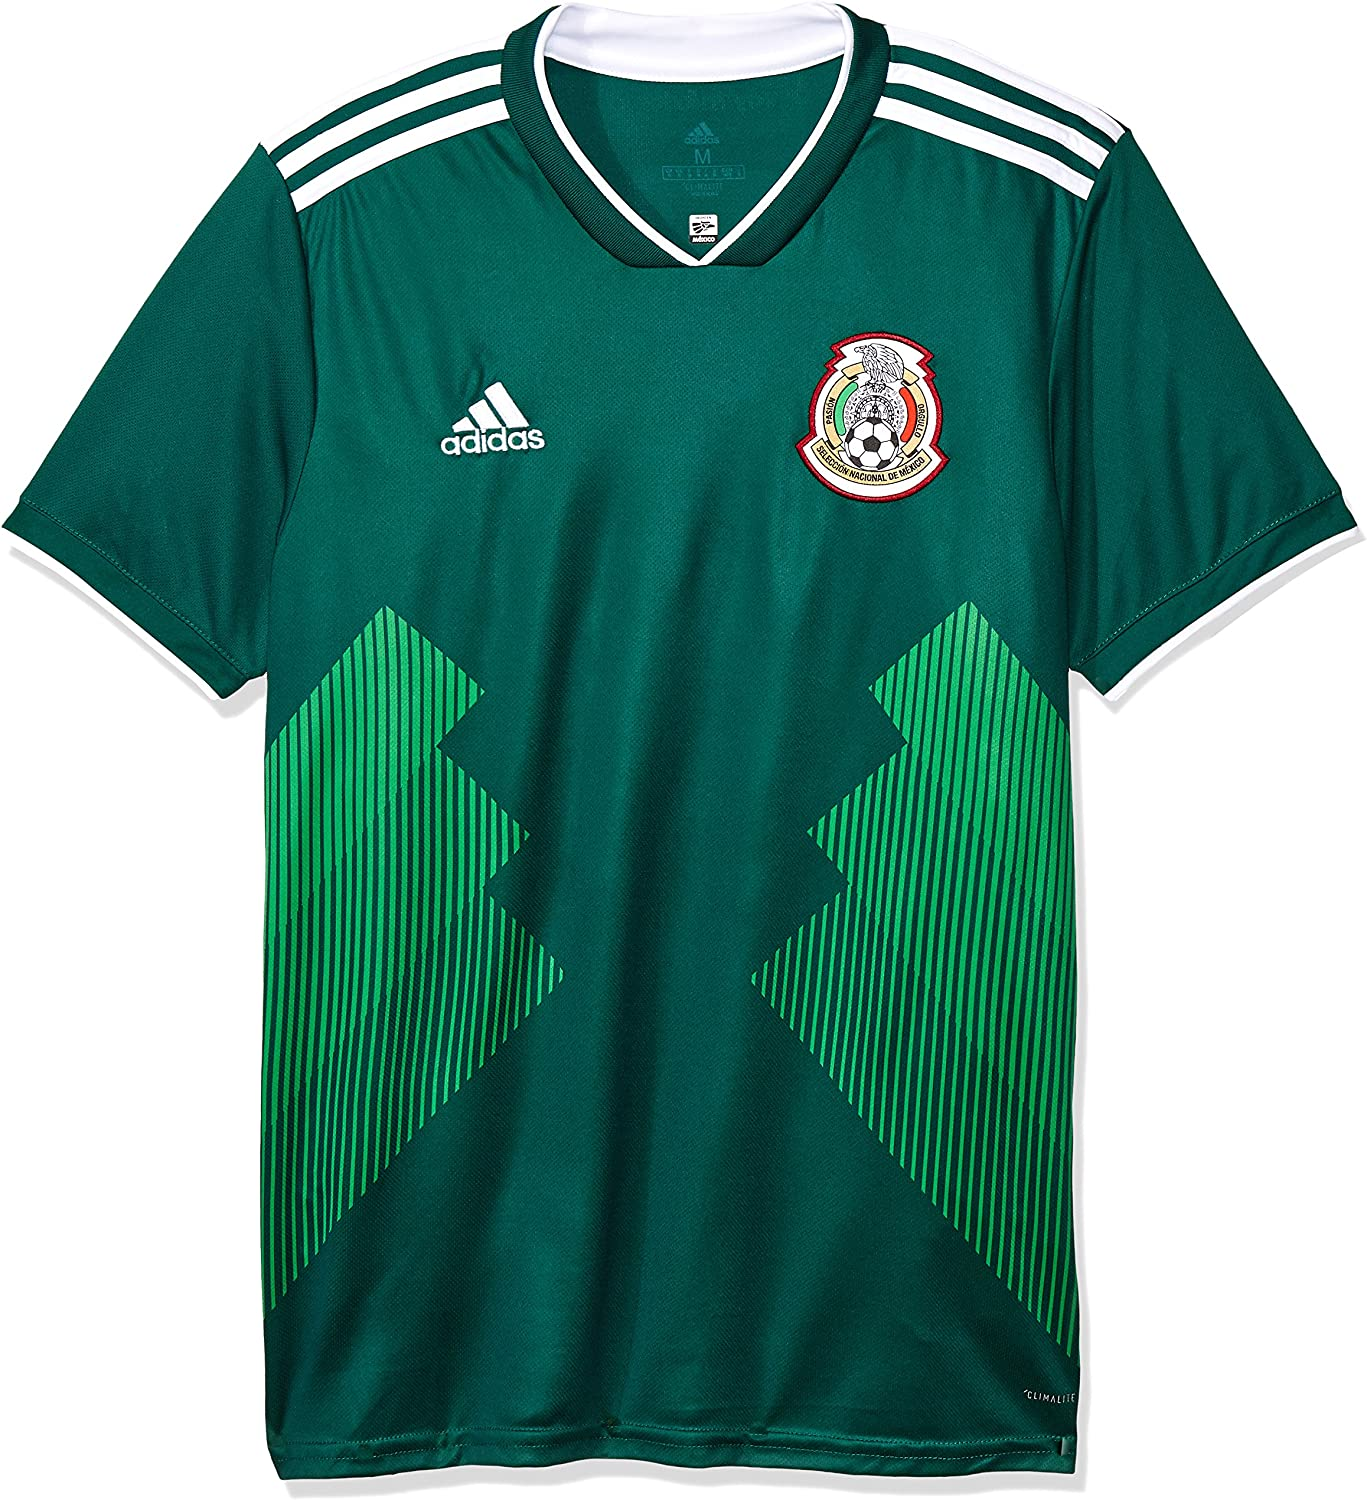 Adidas  Original Mexico Men's Soccer Jersey  World Cup 2018